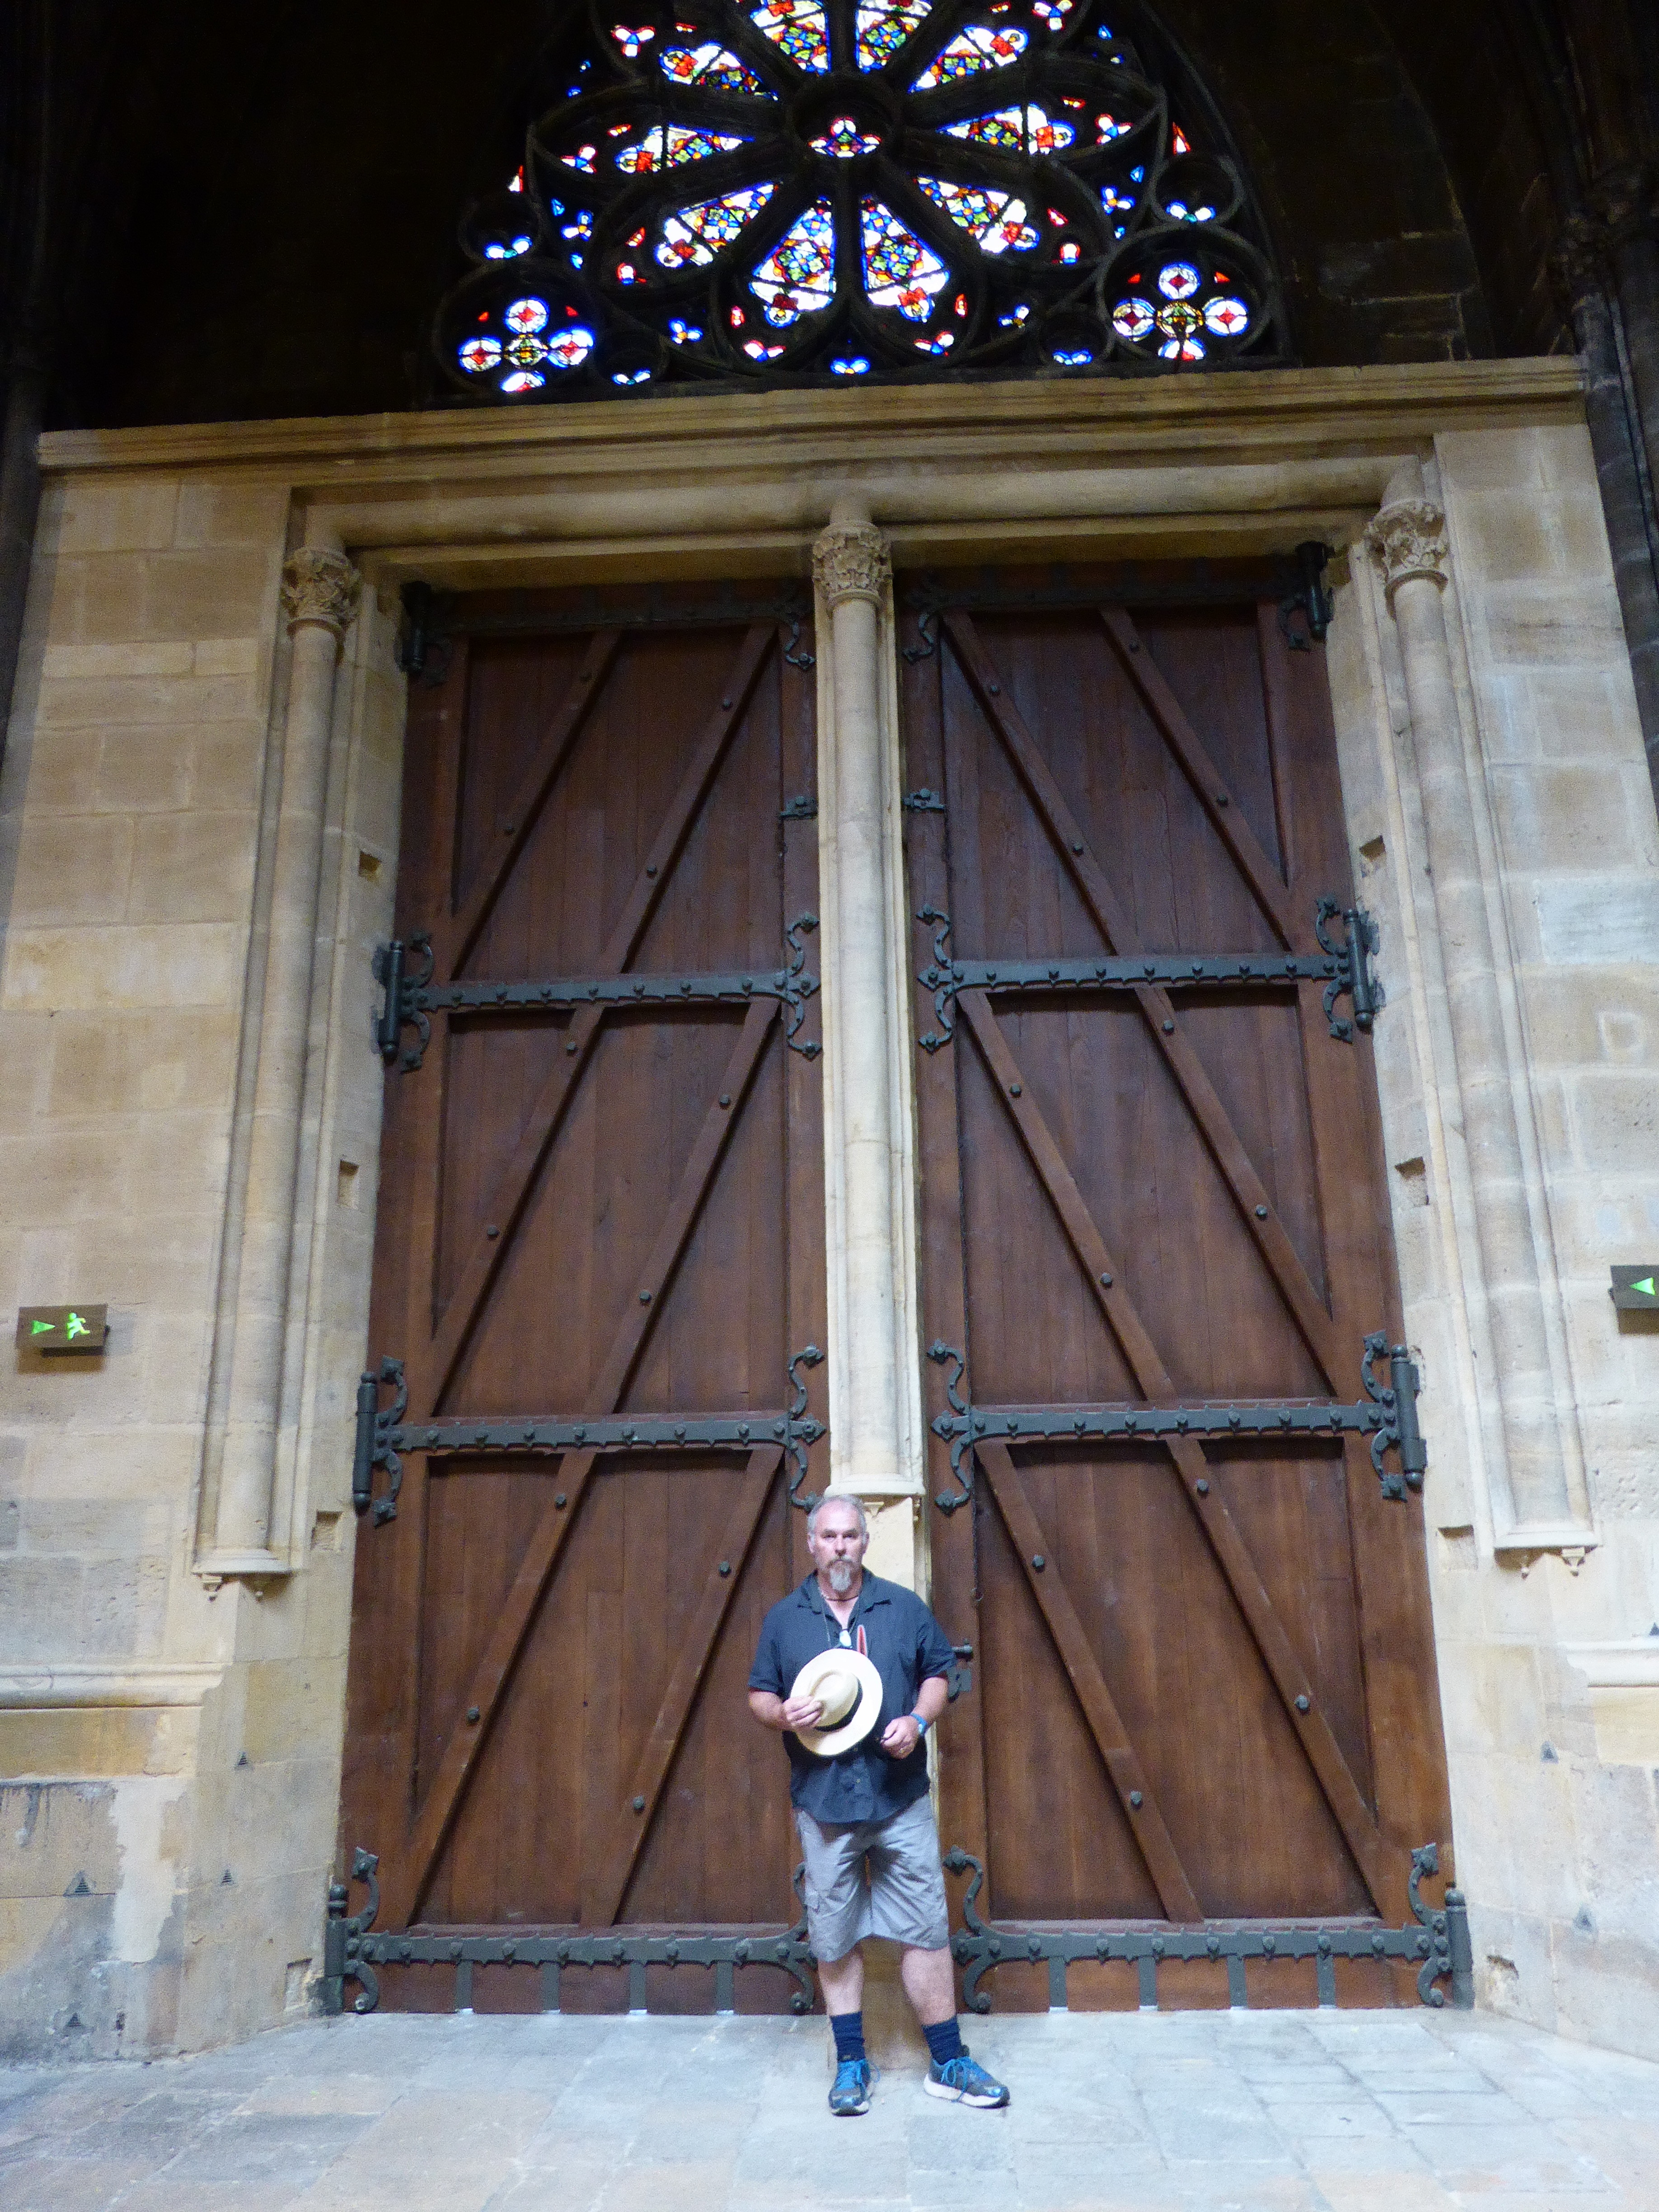 This gives you an idea how big the place was. This is Ewout standing next to the side door. [Robyn, a big enough door for you?]